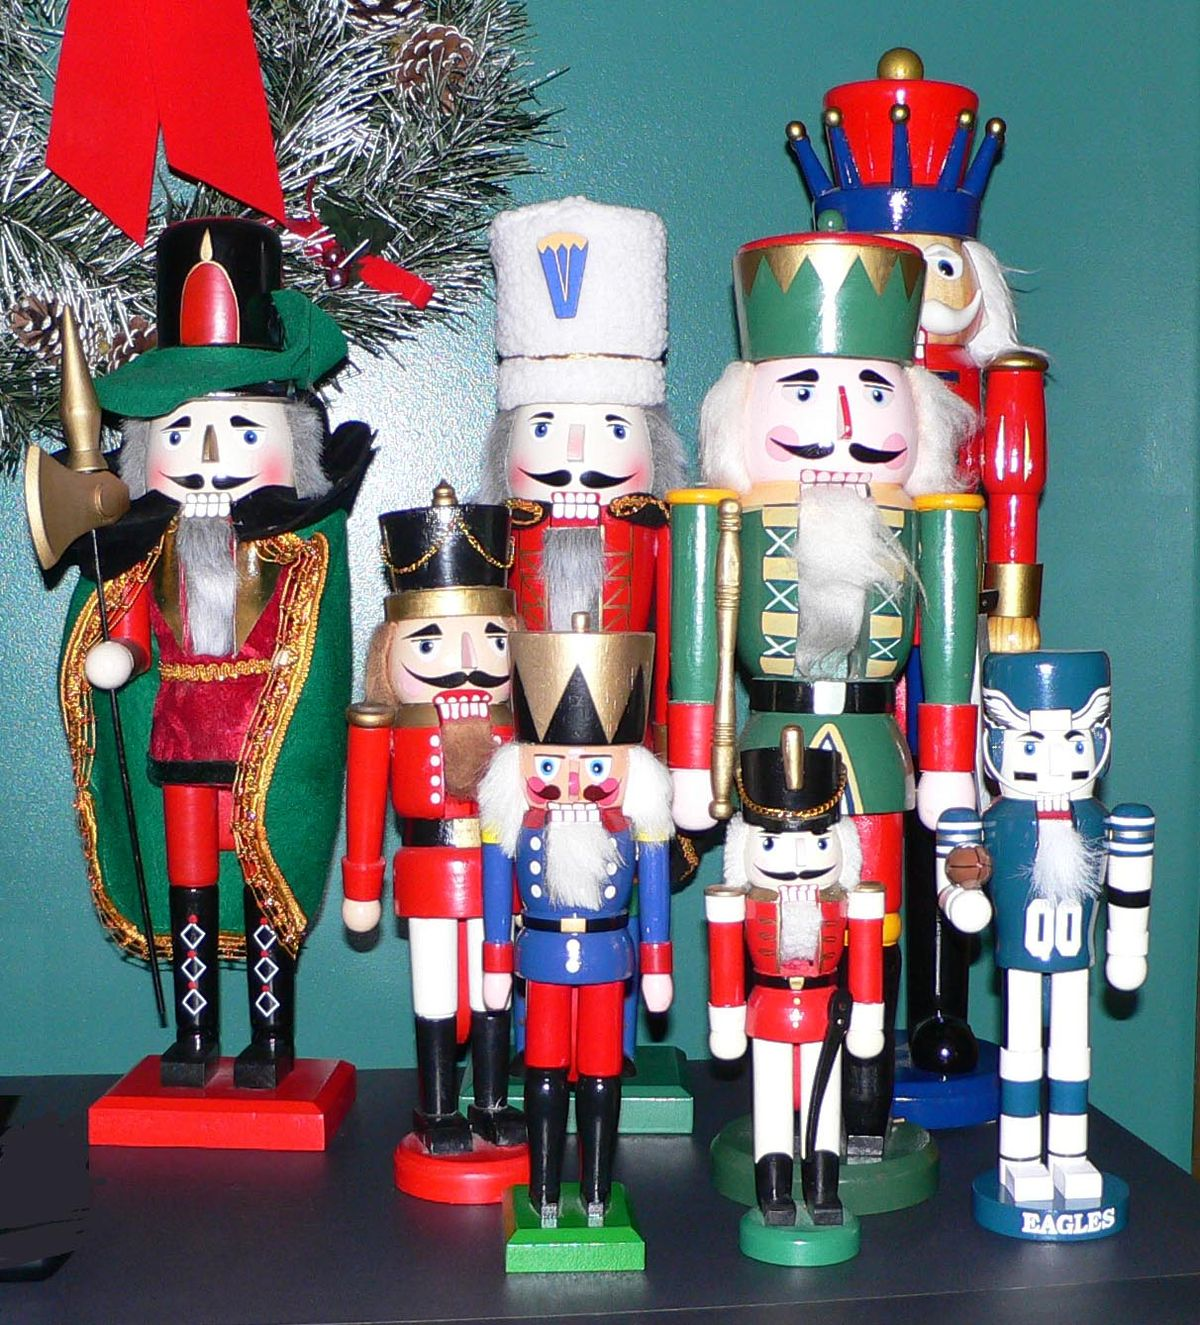 nutcracker doll wikipedia - Nutcracker Christmas Decorations